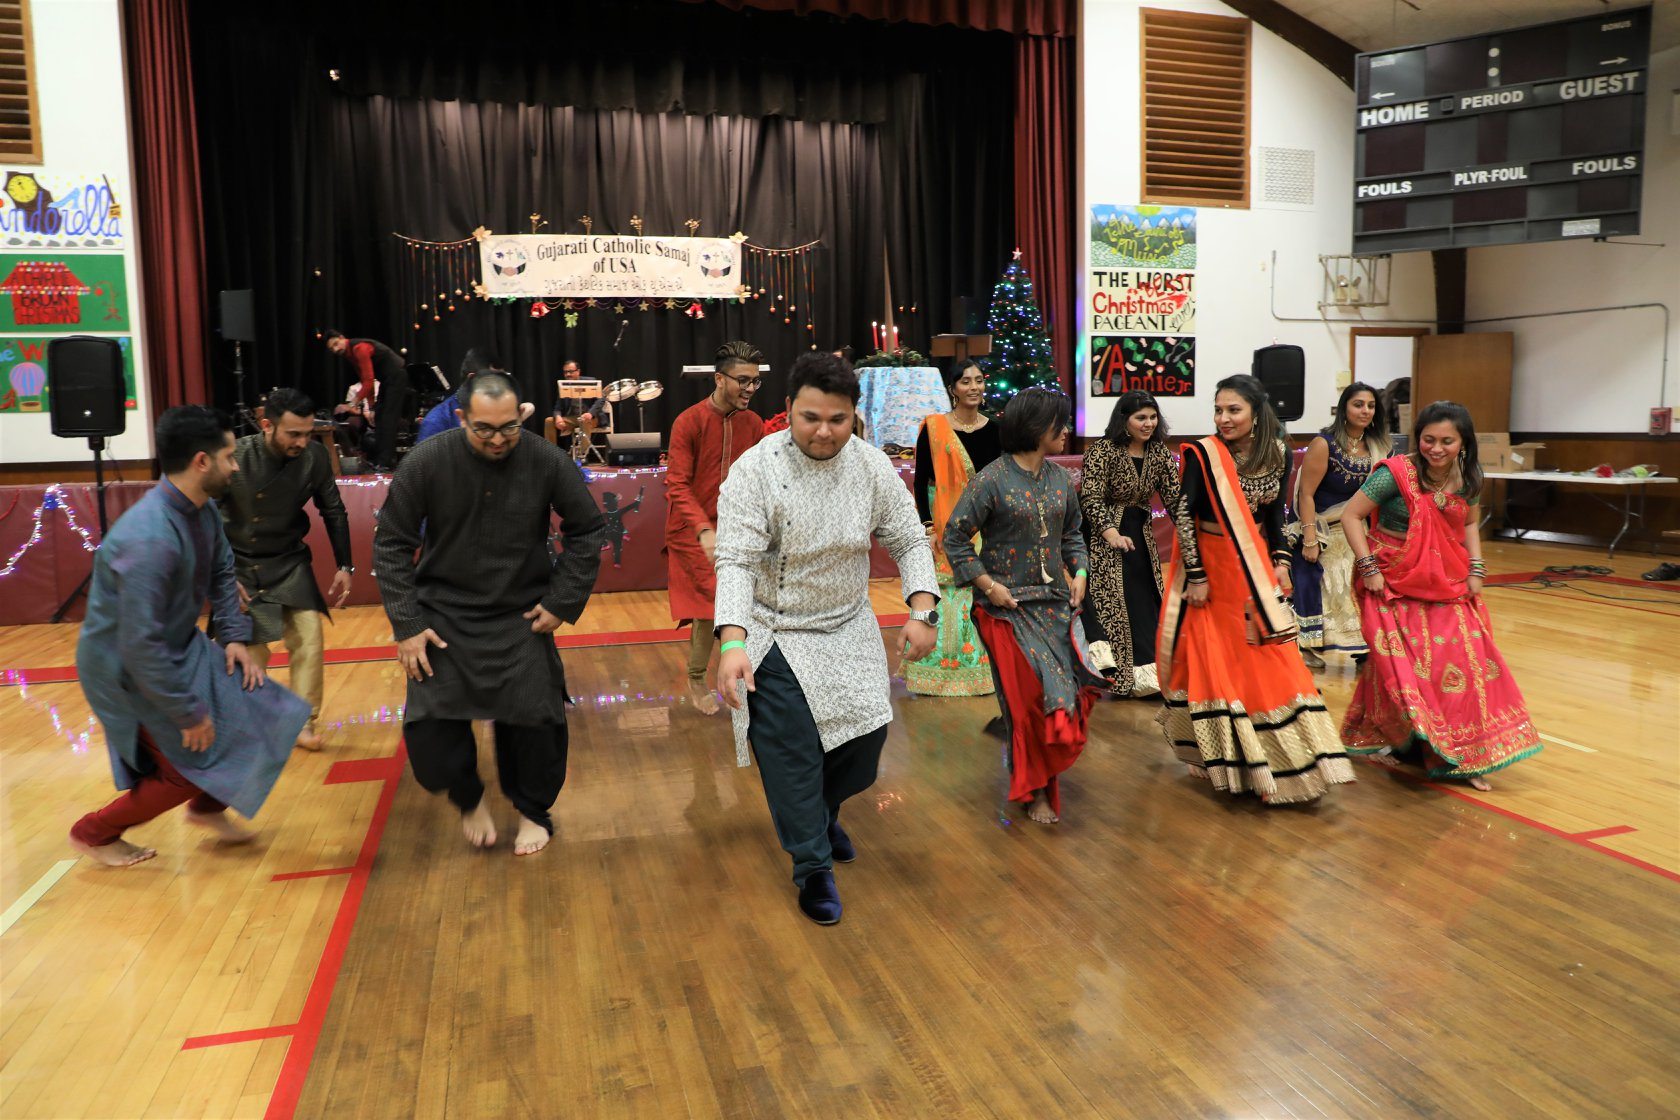 Christmas Events In South Jersey 2020 Gujarati Catholics hold Christmas celebrations in New Jersey